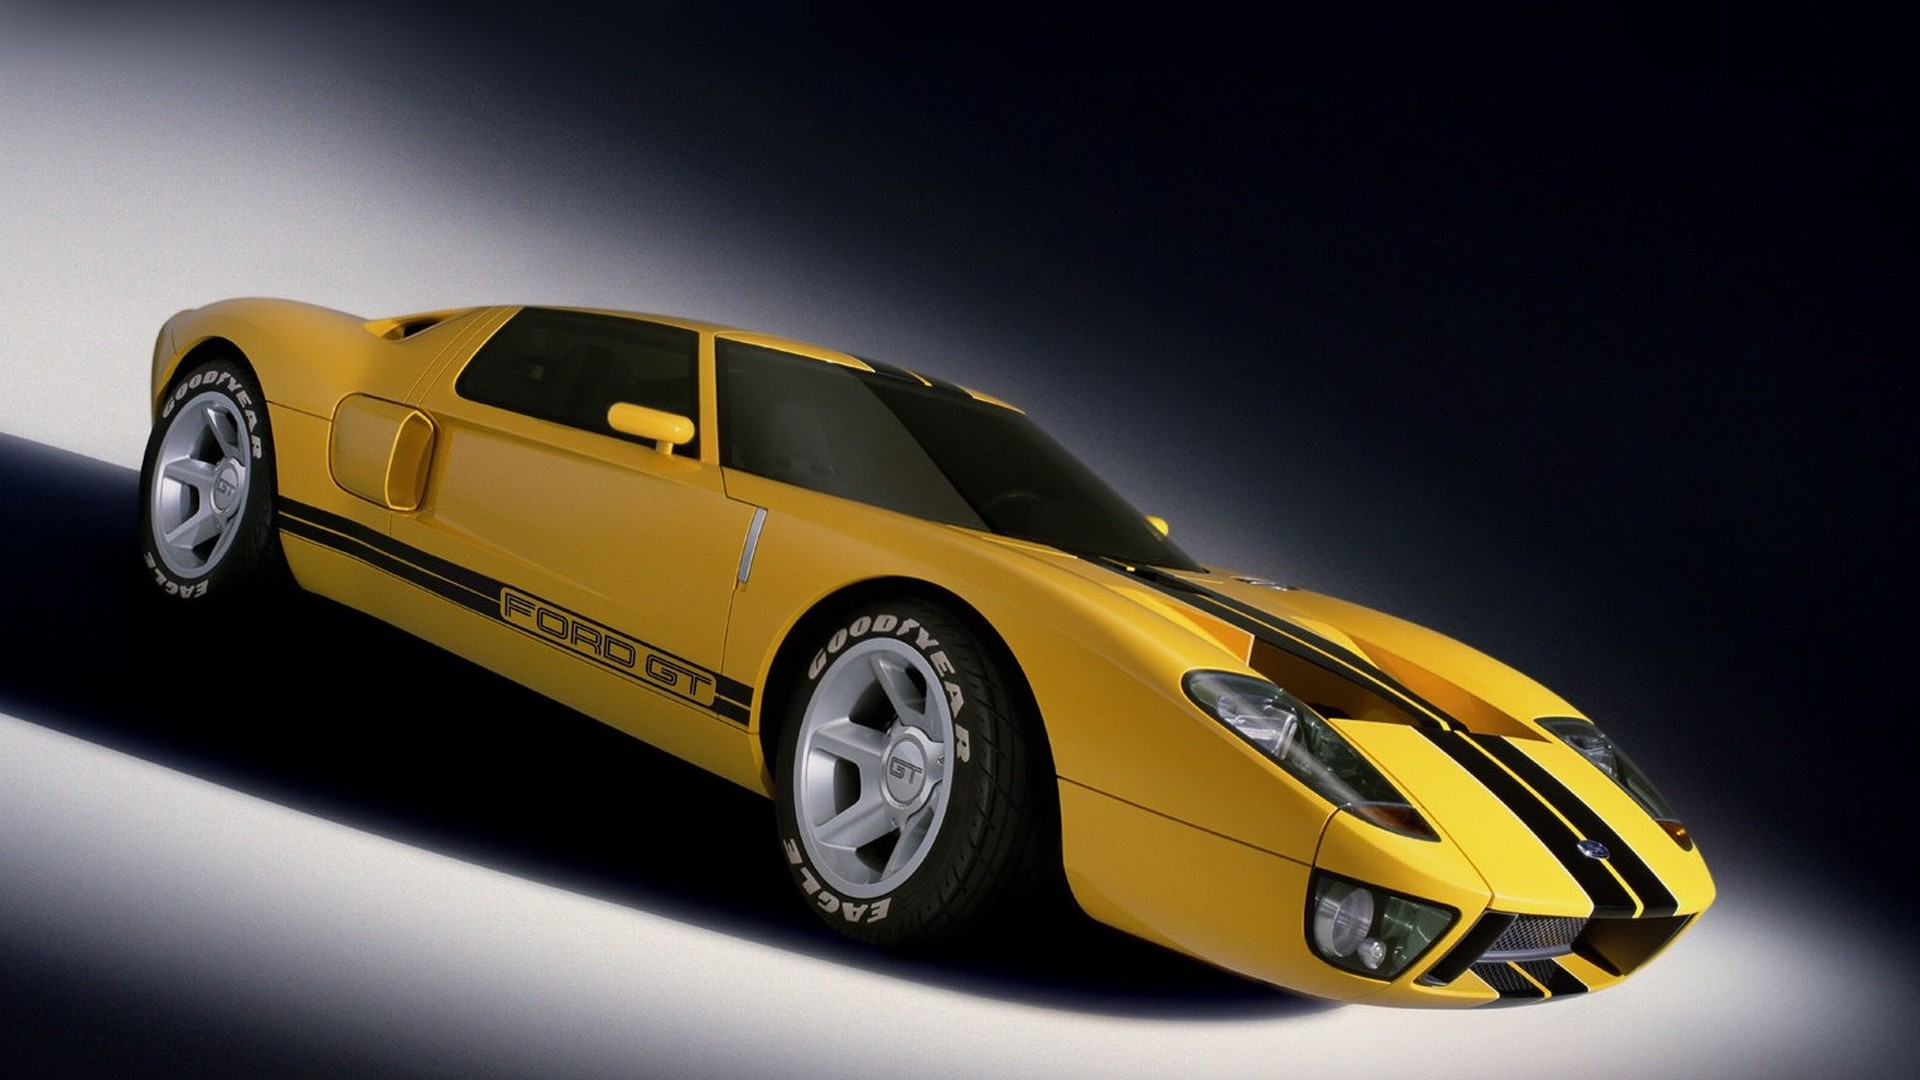 Ford GT40 Concept 2002 13 1920x1080 WallpapersFord GT 1920x1080 1920x1080